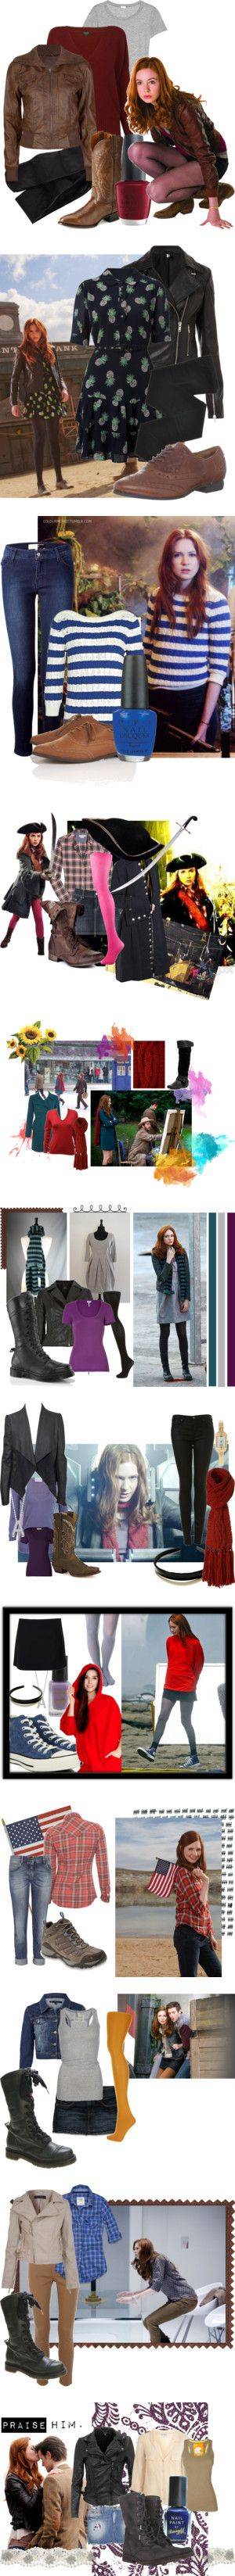 Amy Pond outfits. by ponderland on Polyvore featuring H&M, Splendid, Jaeger, Full Tilt, Nocona, OPI, amy pond, doctor who, karen gillan and Whistles